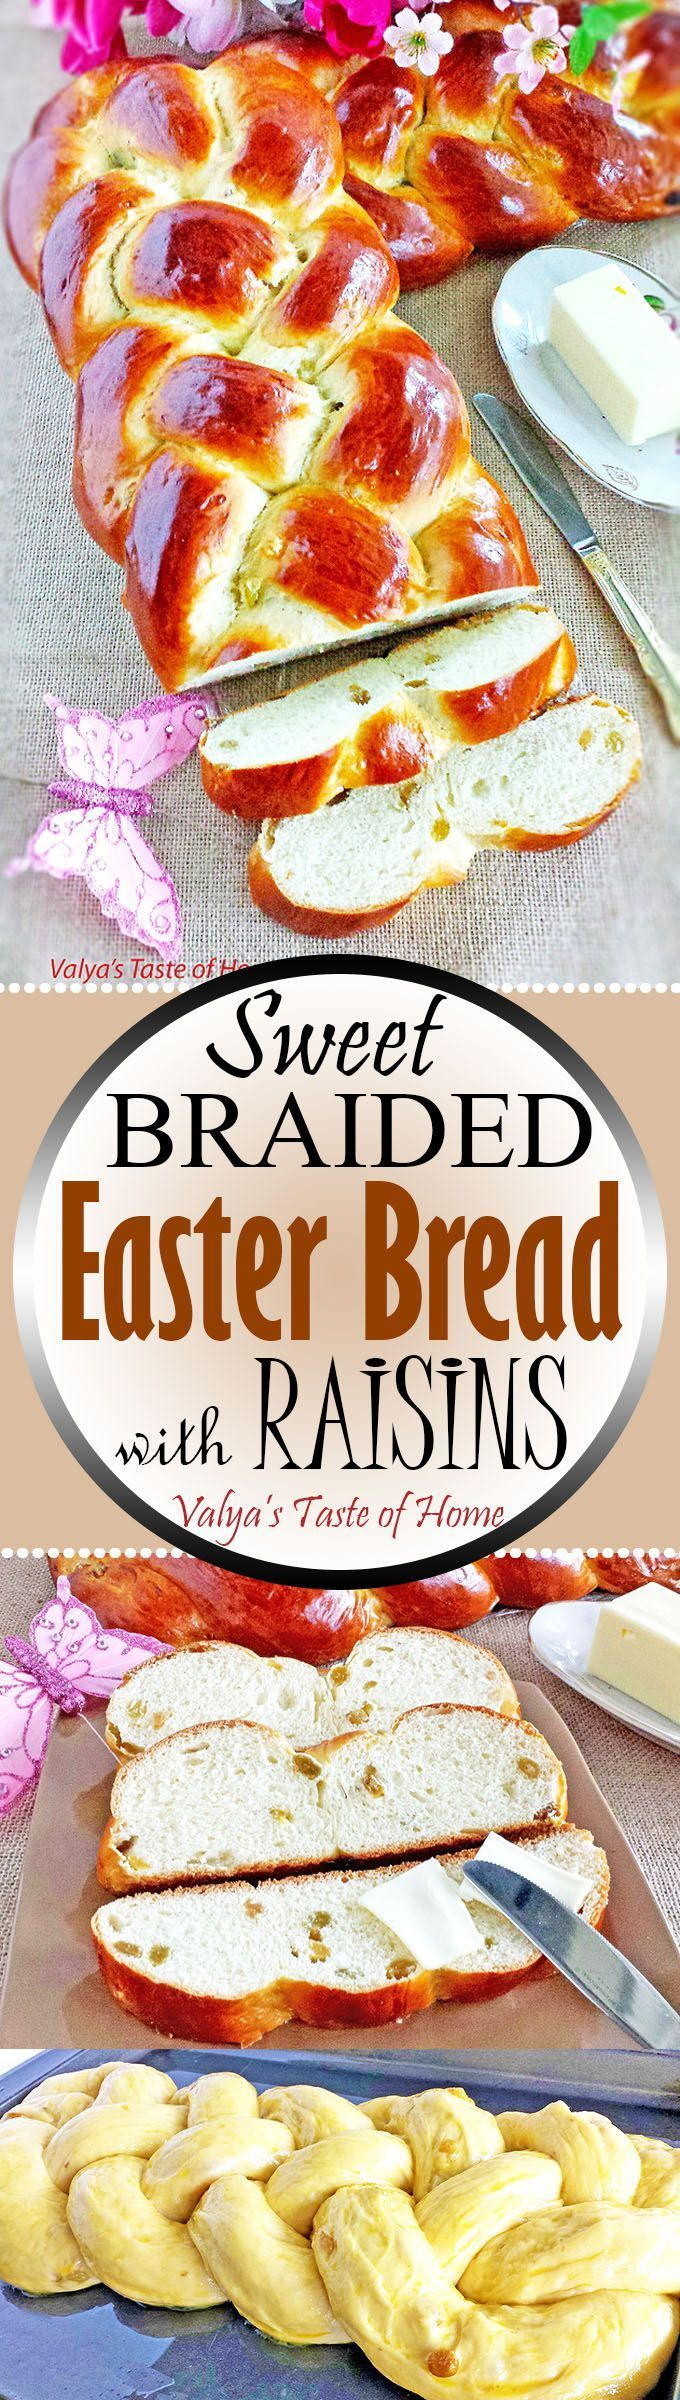 This Sweet Braided Easter Bread with Raisins isn't difficult to make but is very much loved. In fact, your Kitchen Aid mixer does most of the work for you. The bread itself is very soft, moist and sweet, the raisins add a nice touch of sour to it which adds a bit of a varied taste. We all absolutely love to enjoy this bread with a little butter spread and a hot cup of tea or coffee.